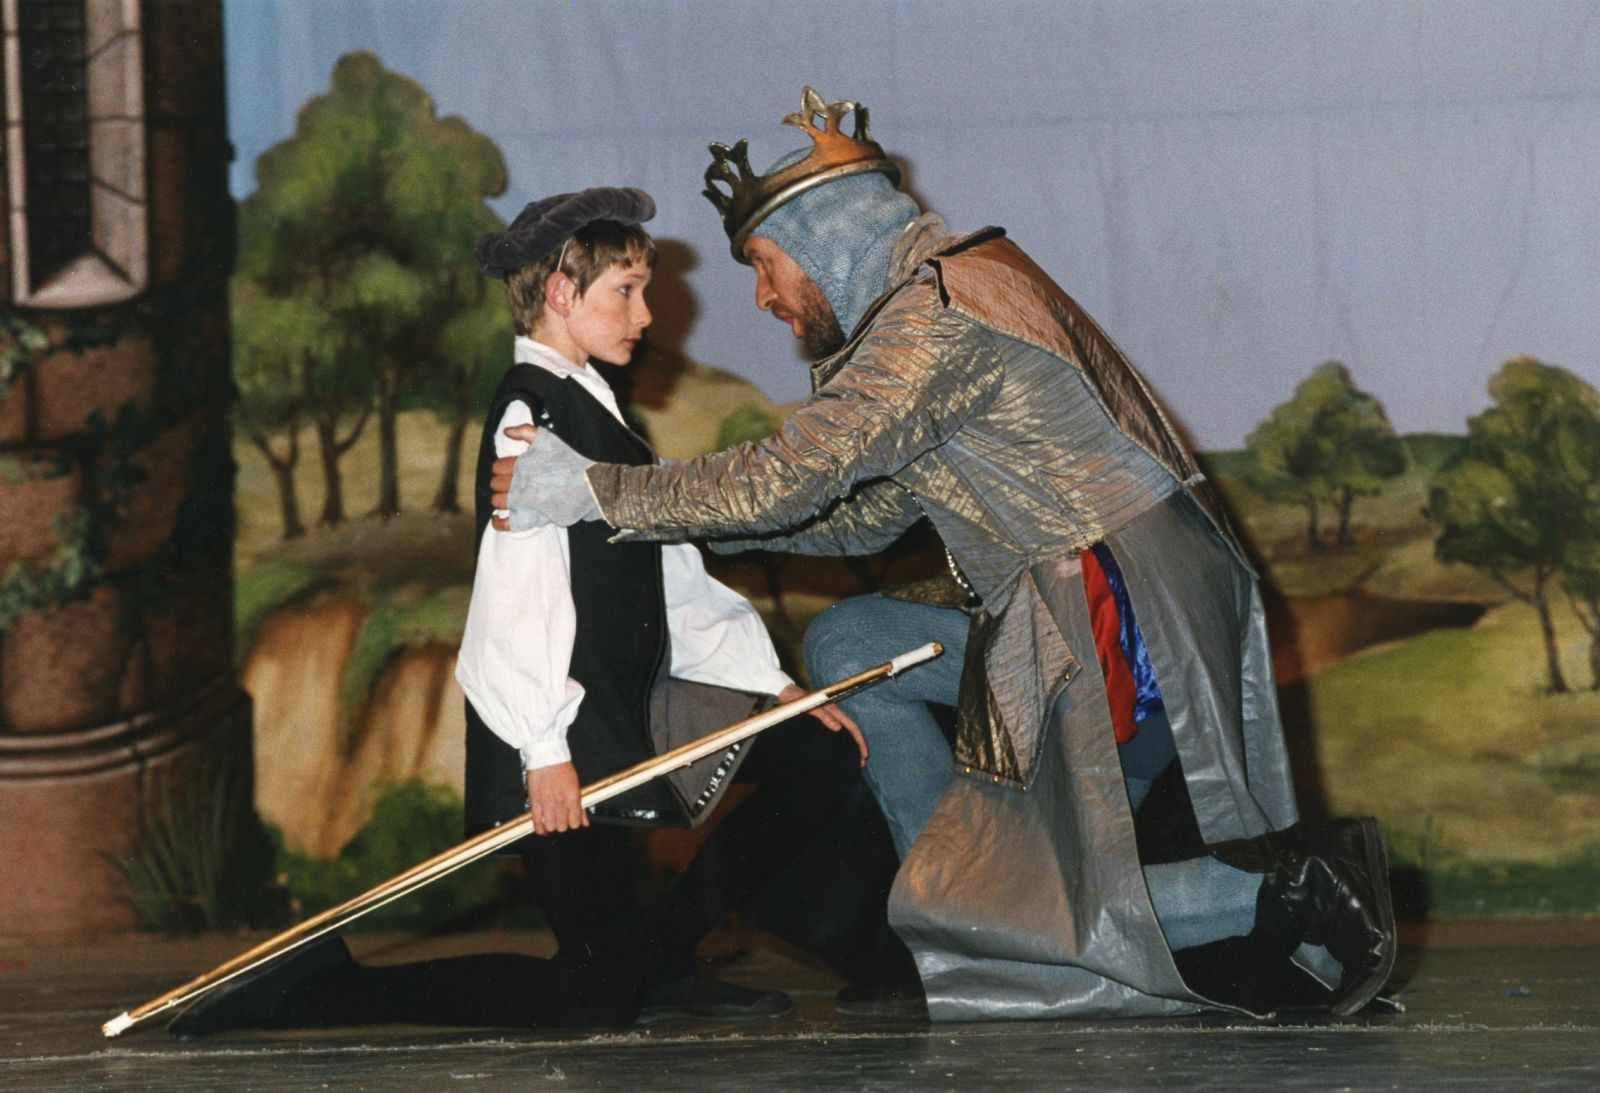 A scene from Camelot, 1993 (2)